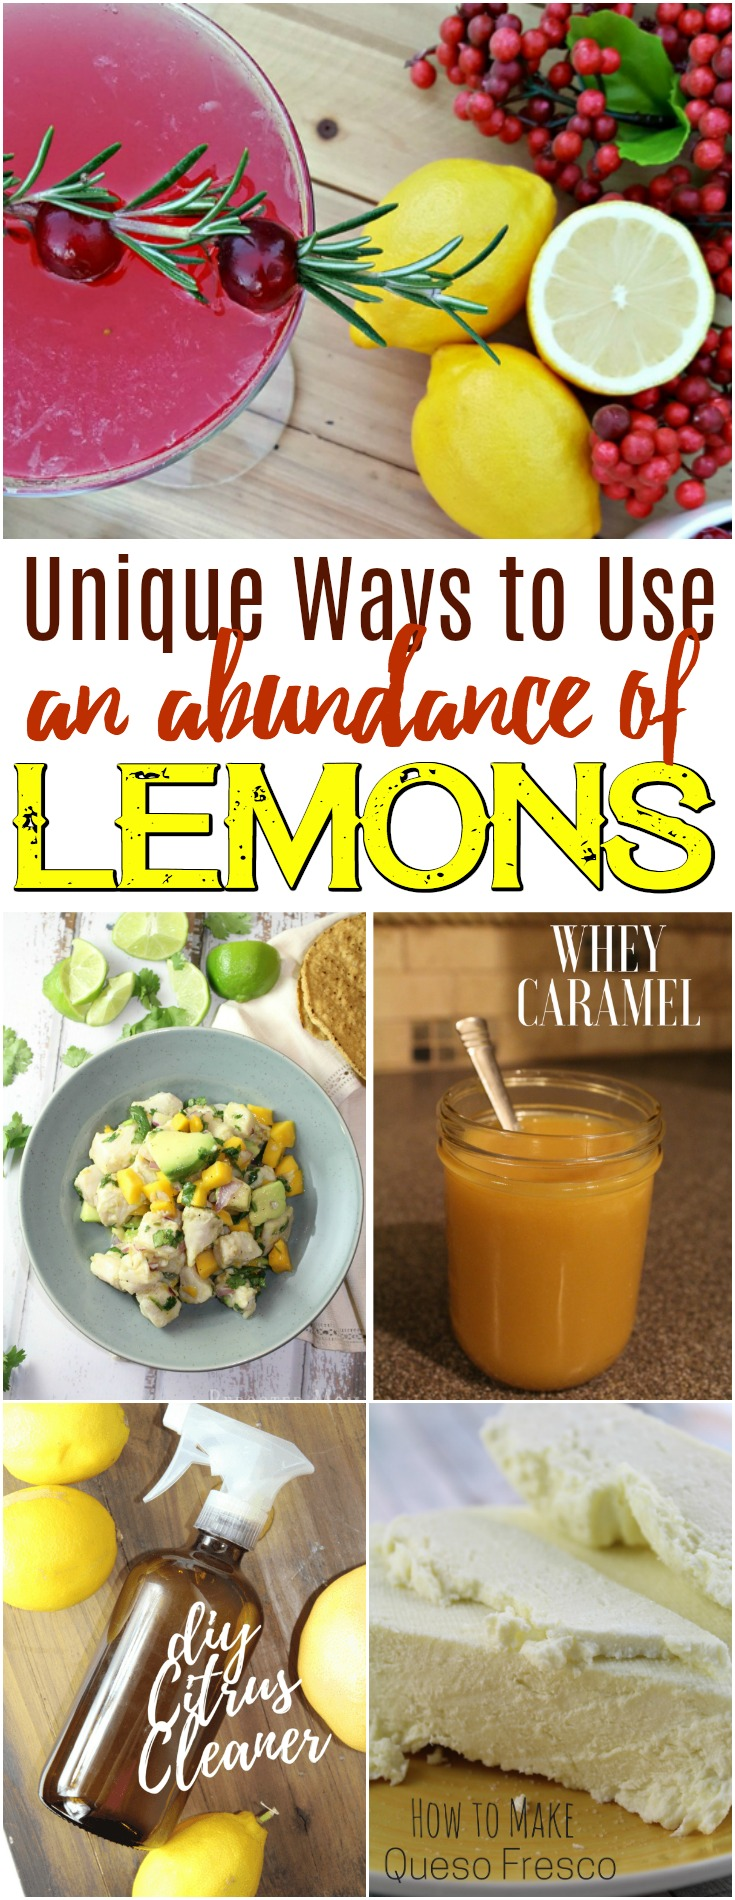 It can be such a blessing to have an abundance of lemons - there are so many fun ways to put them to use! #lemons #frugal #homesteading #lemonrecipes